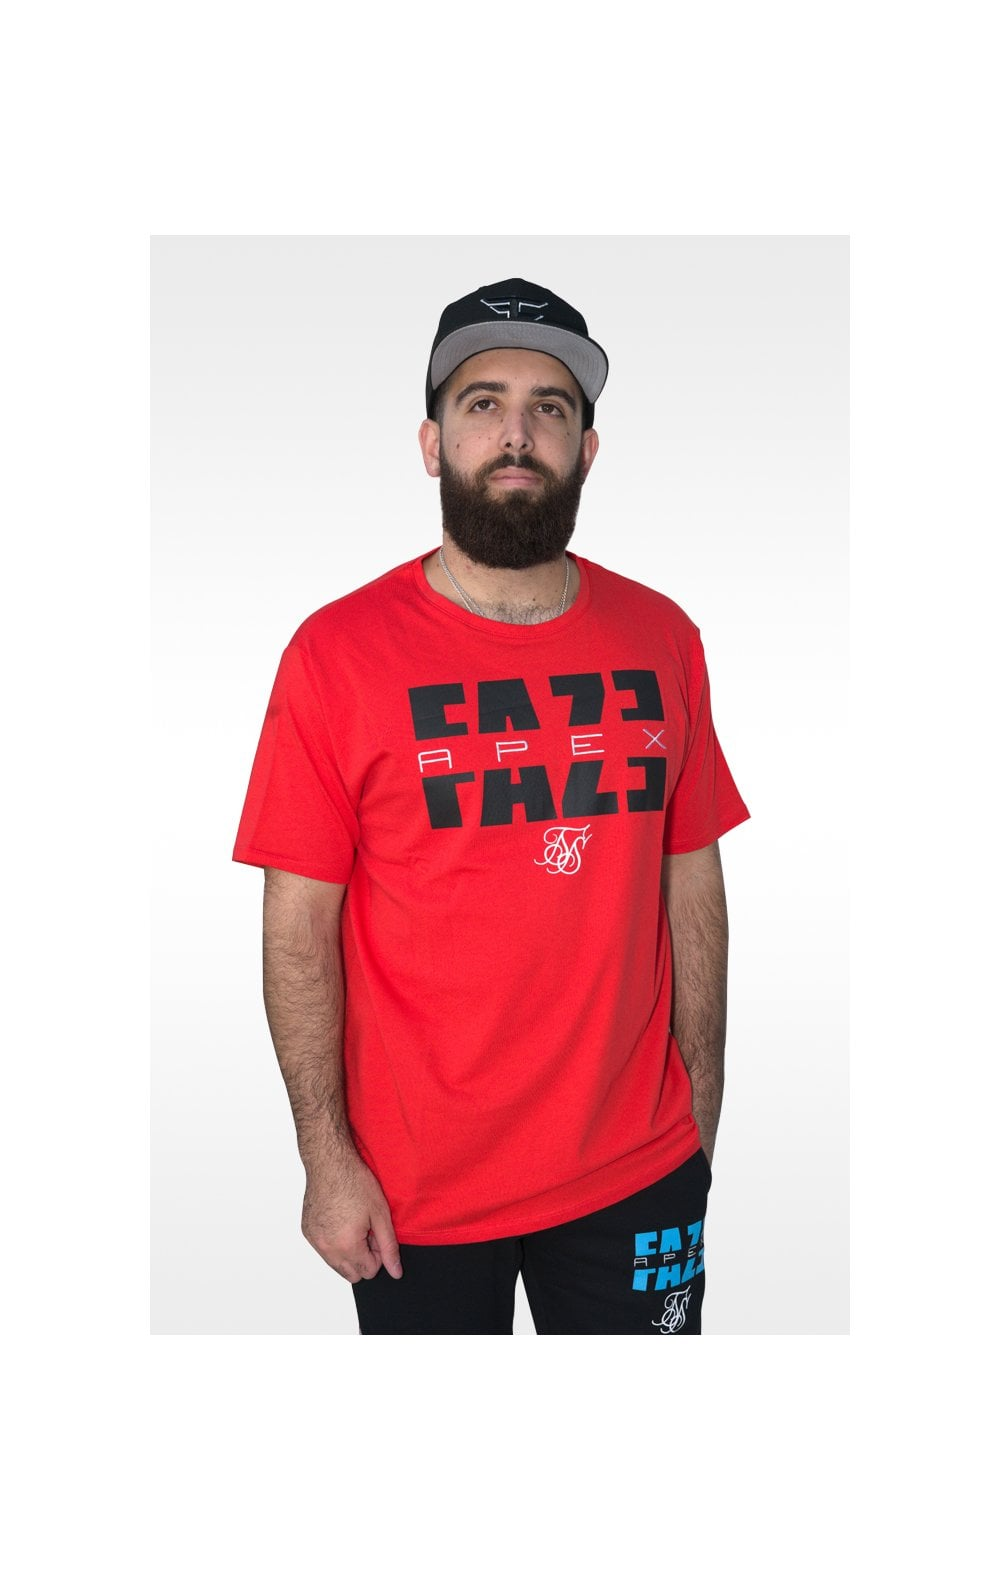 SikSilk x FaZe Apex T-Shirt à Ourlet Carré - Rouge (6)